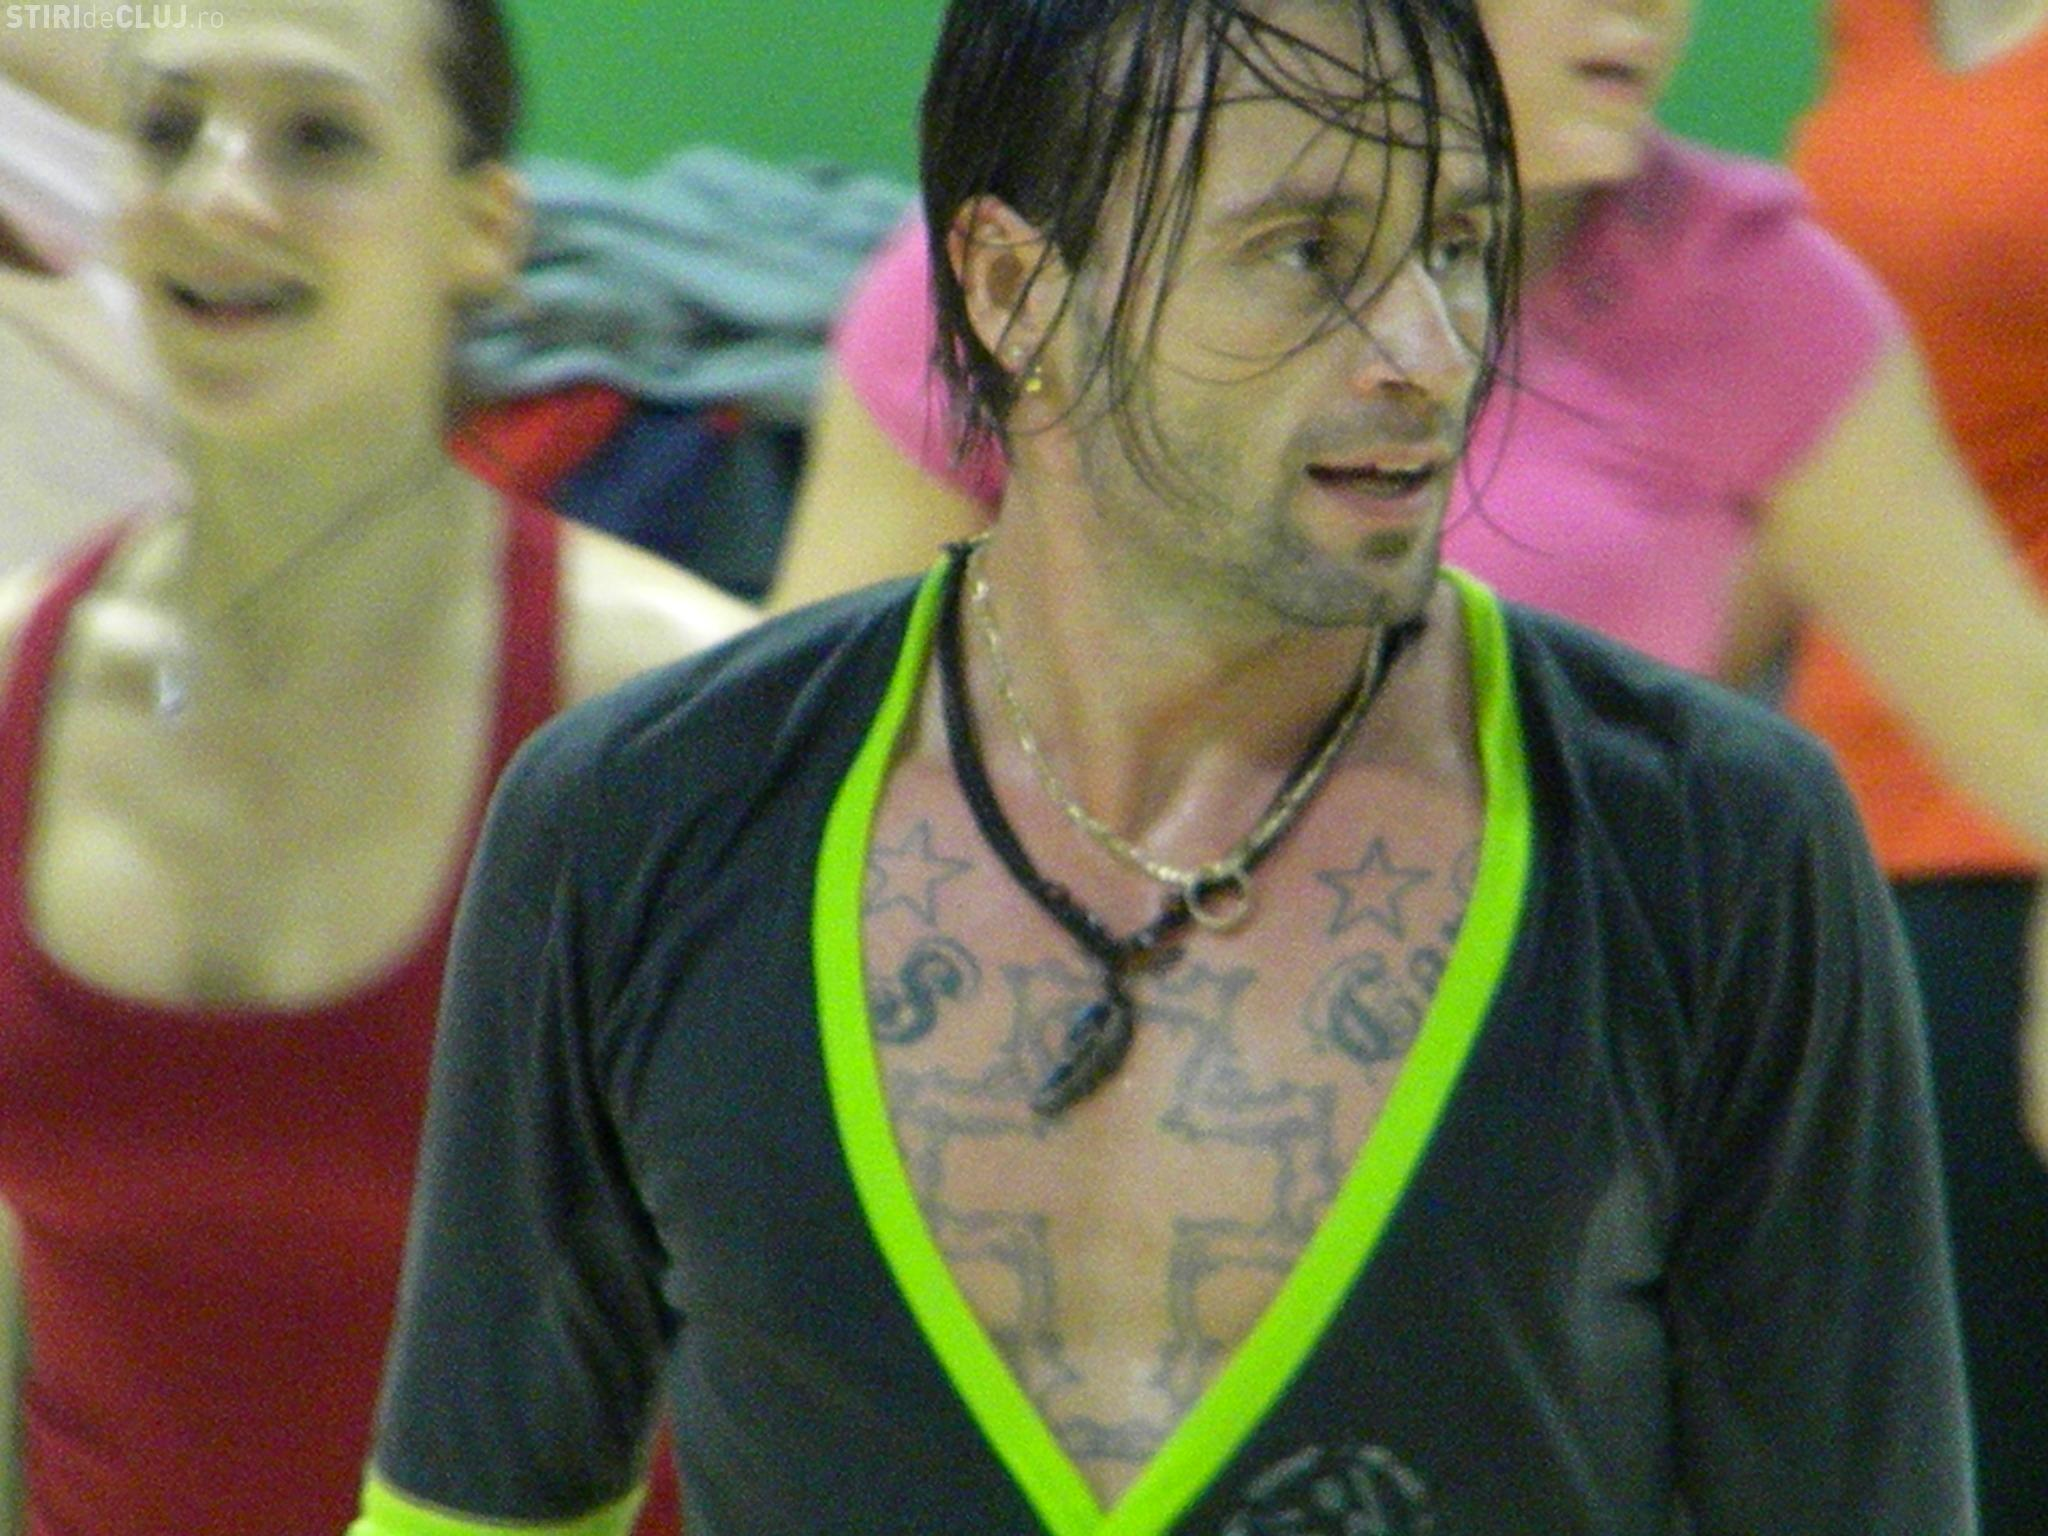 Masterclass ZUMBA la Gimmy, cu Dennis Thomsen, un cunoscut instructor din Danemarca VIDEO si FOTO